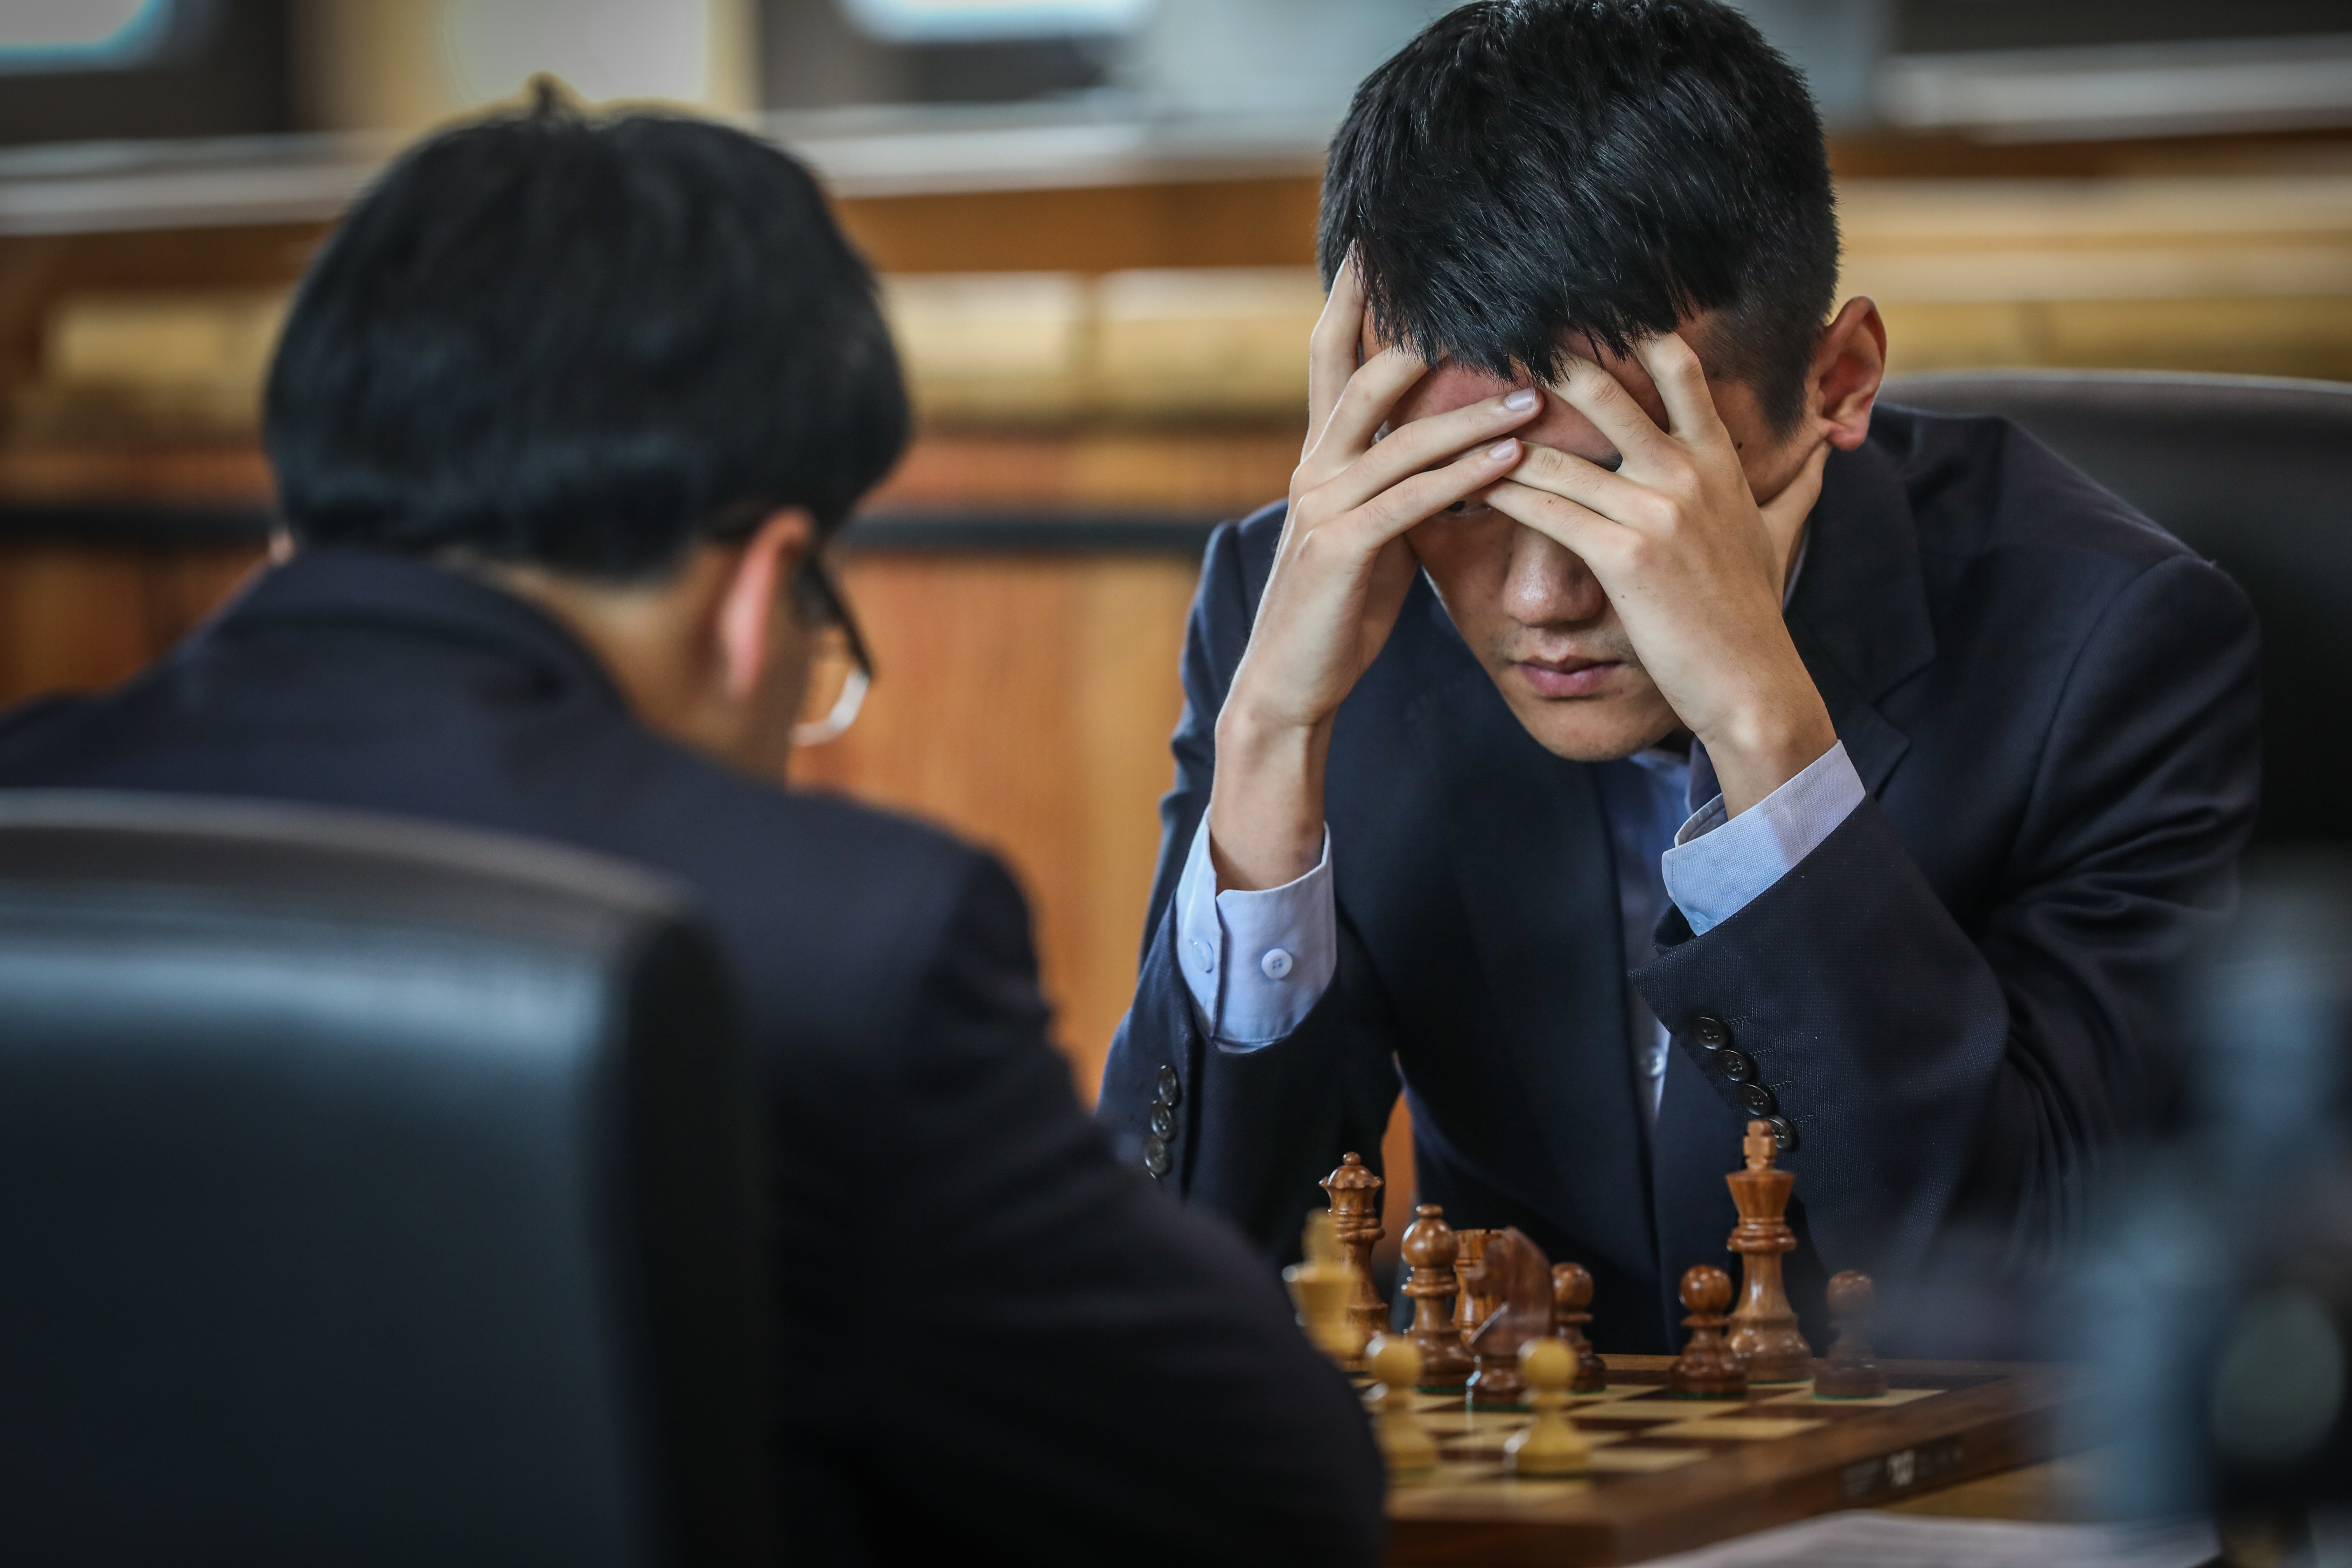 Ding Liren thinks about his next move.